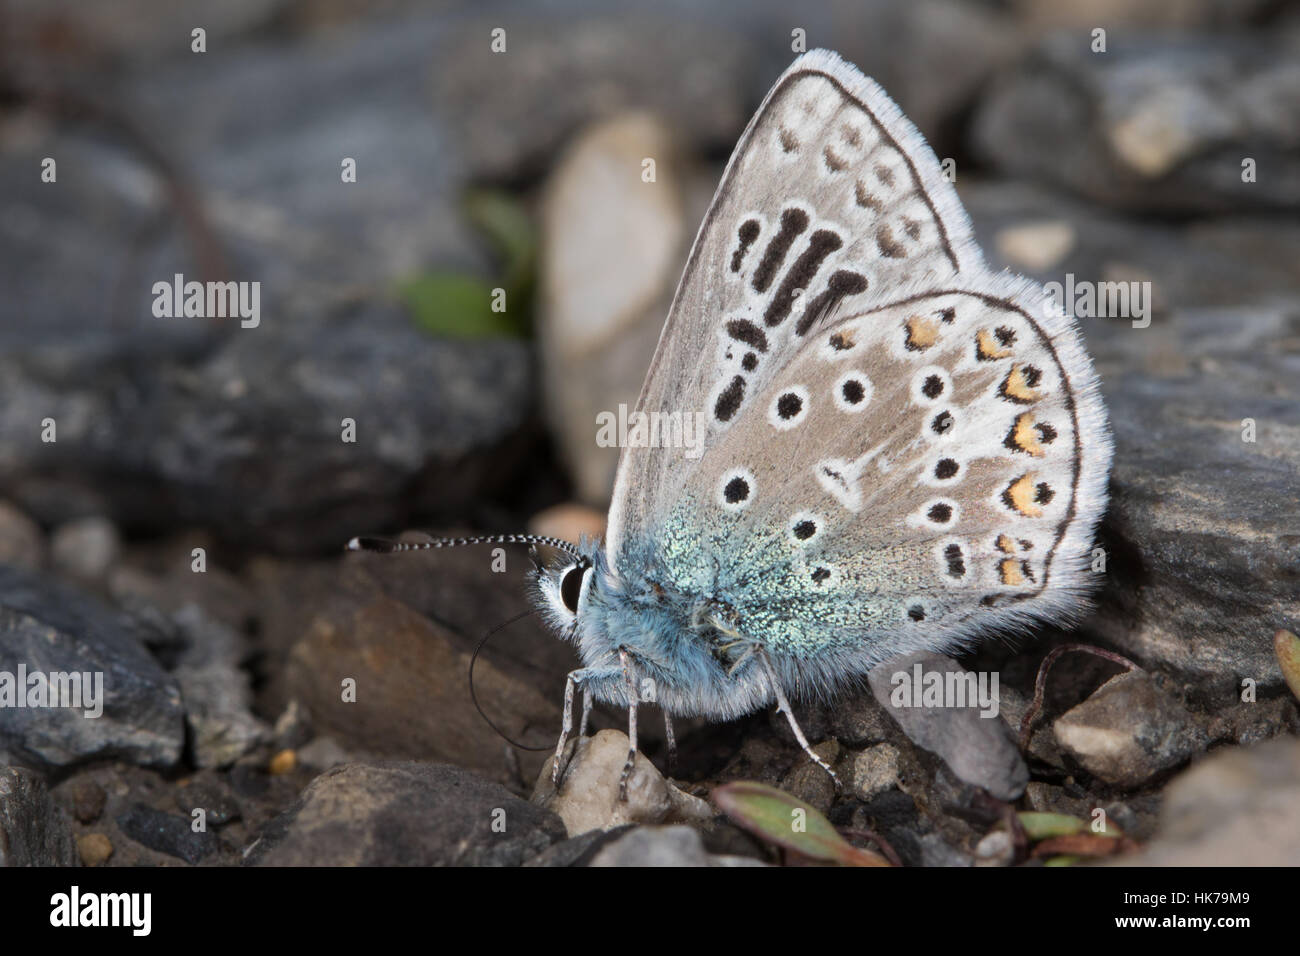 aberrant Common Blue (Polyommatus icarus) butterfly feeding on minerals from damp soil - Stock Image